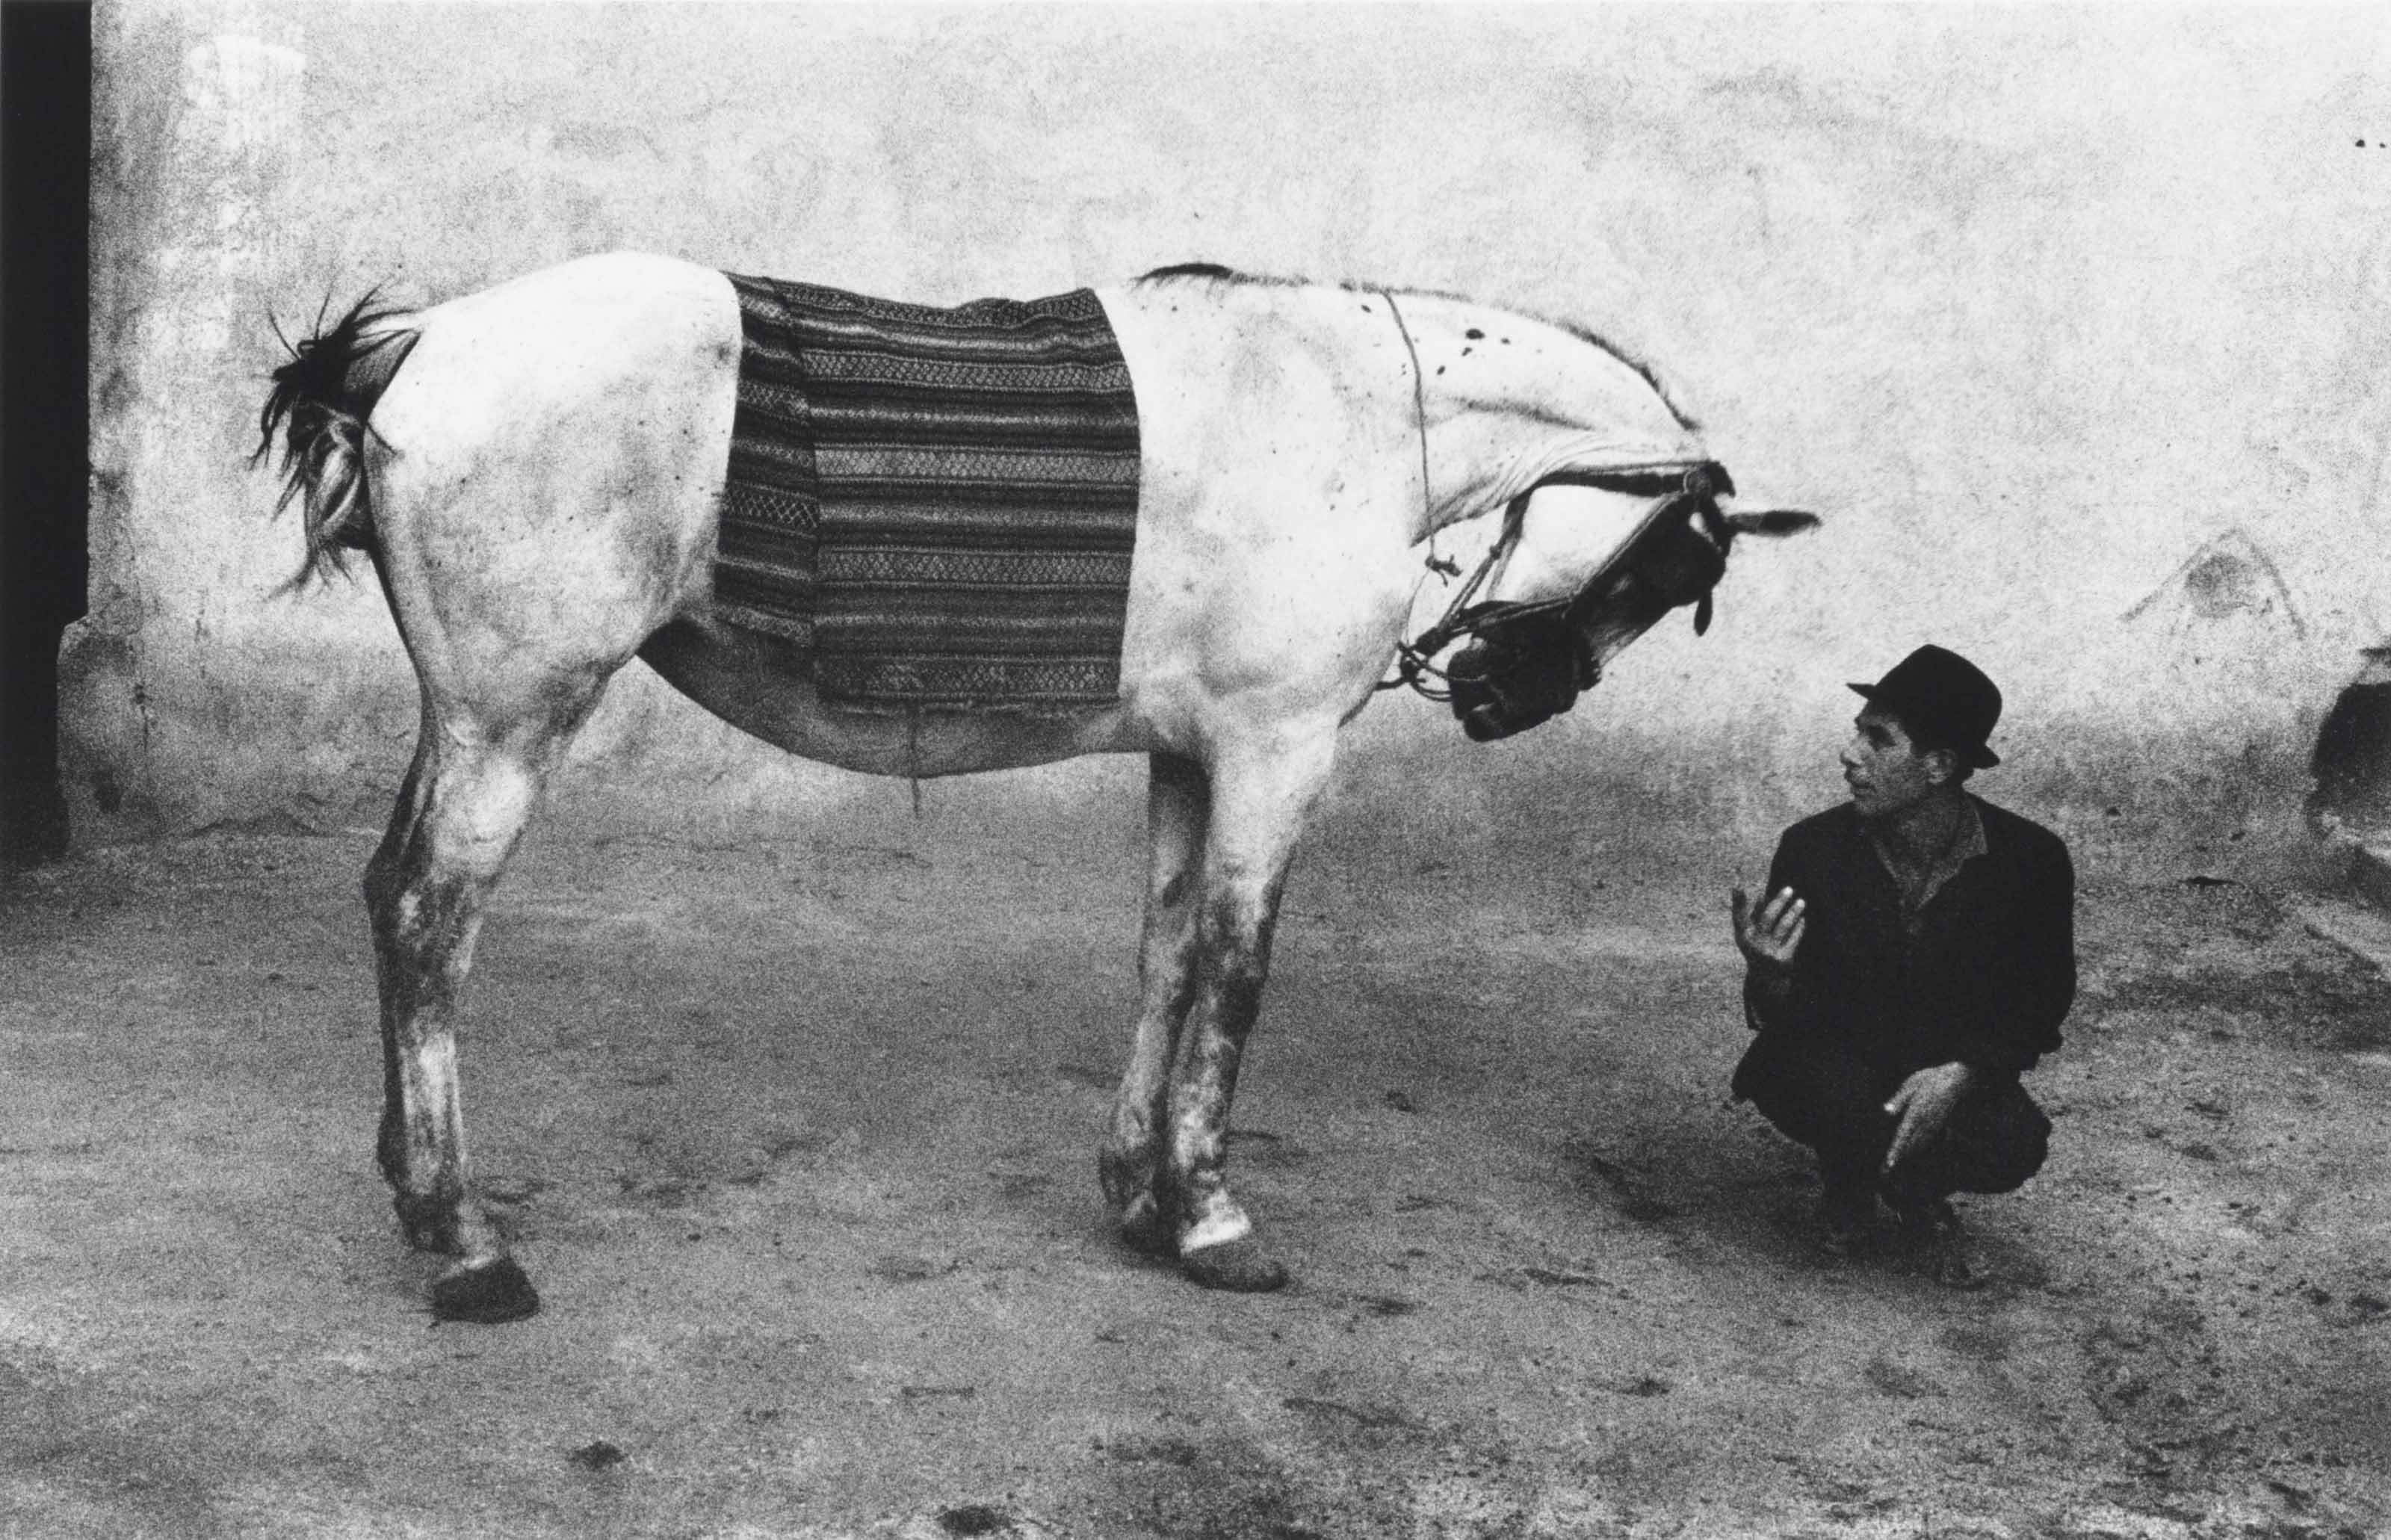 Man with horse, Romania, 1968